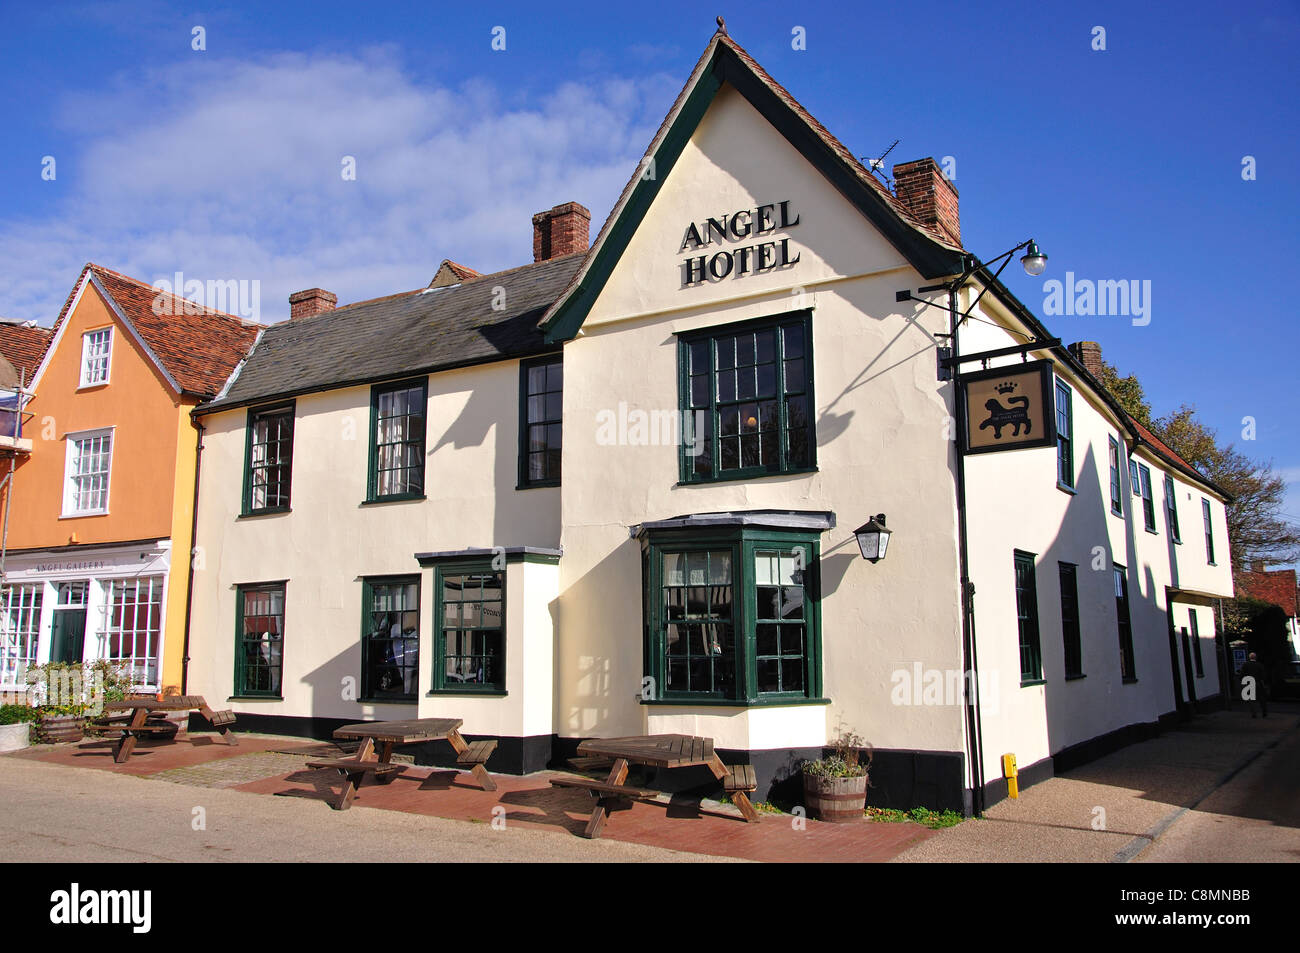 15th century The Angel Hotel, Market Square, Lavenham, Suffolk, England, United Kingdom Stock Photo